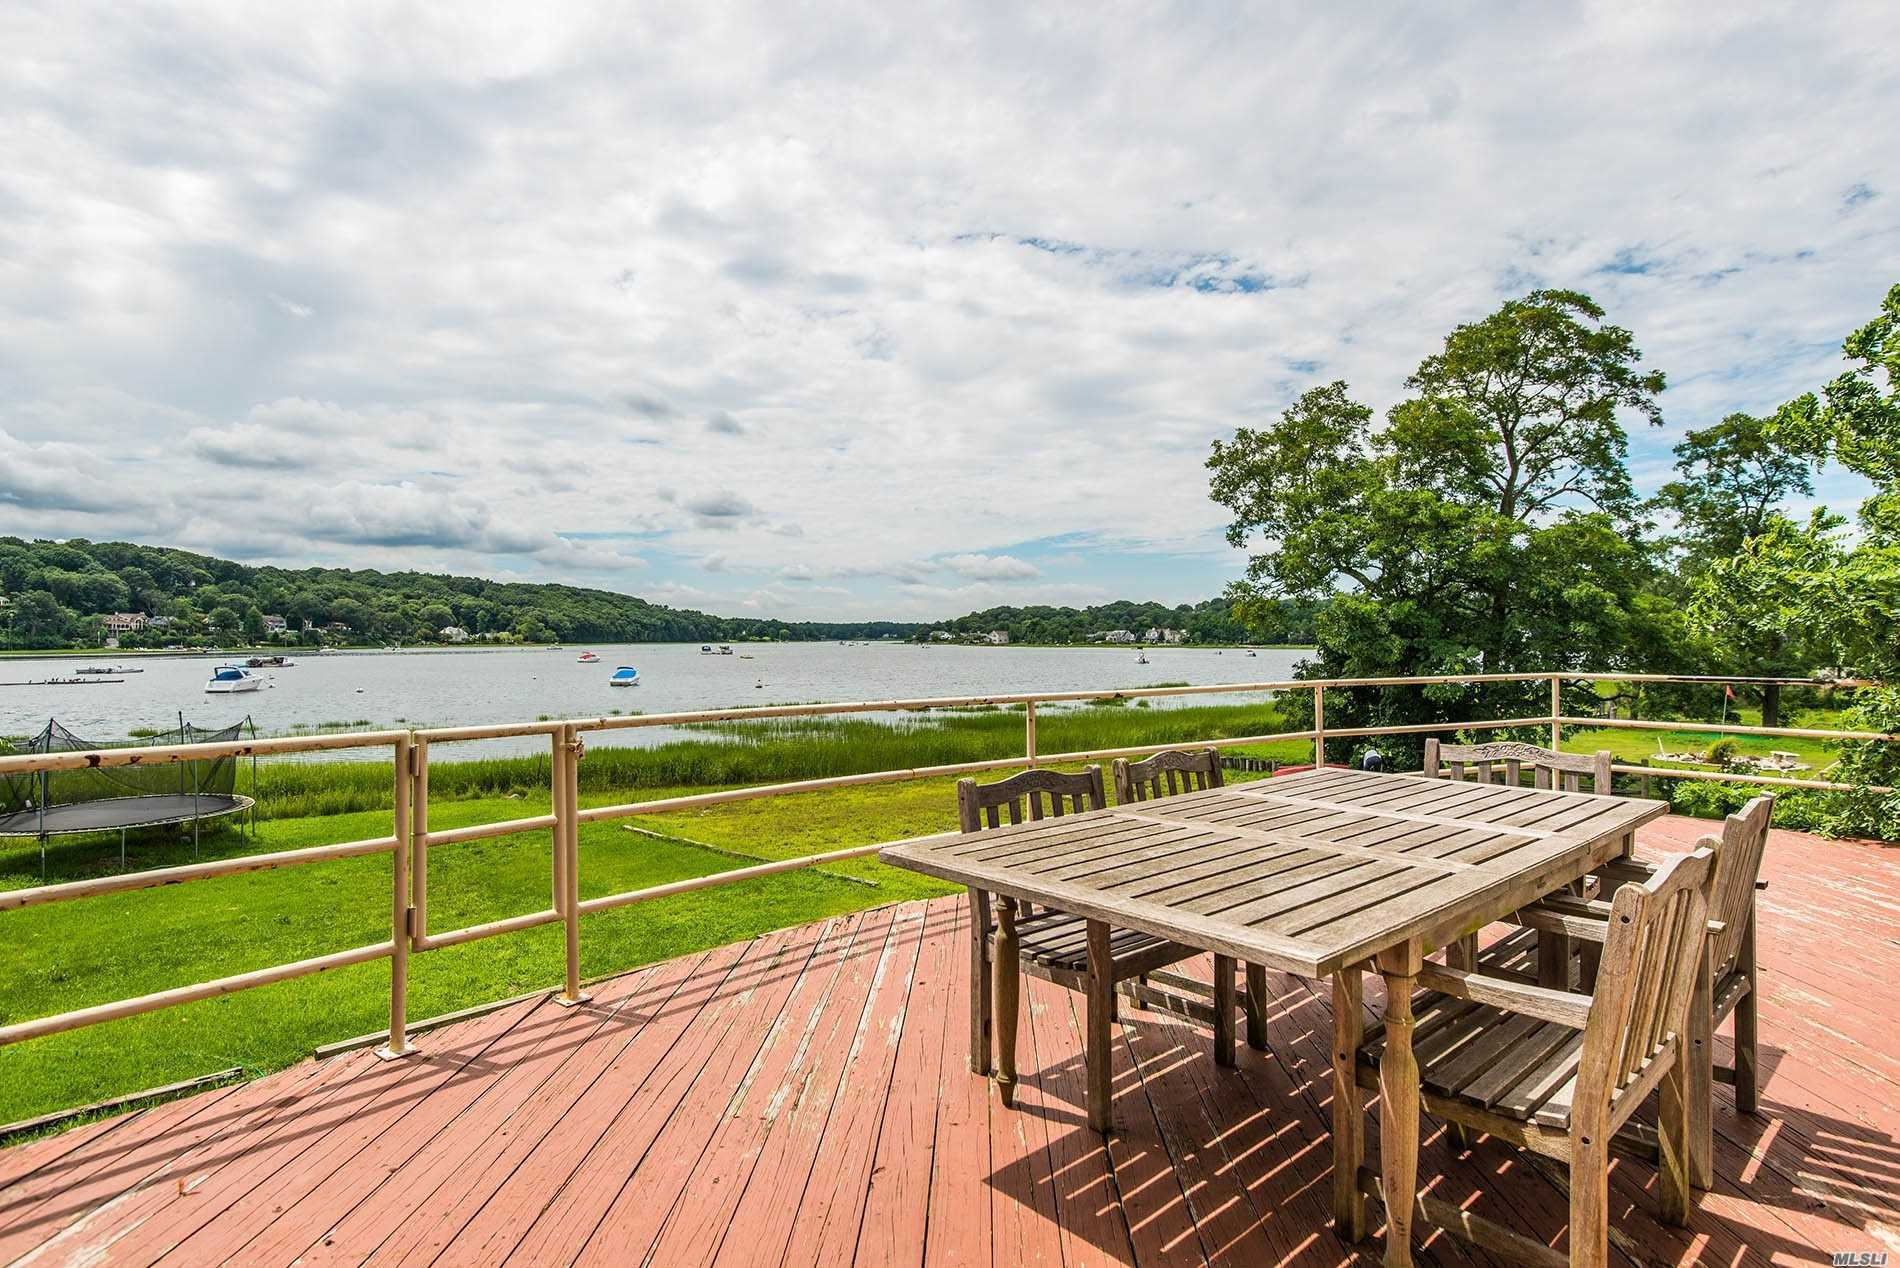 Phenomenal New Price! Waterfront! Extended Home Offers An Incredibly Versatile Floor Plan W/ 5 Beds, 4 Baths & Breathtaking Bay Views. This Spacious Residence On A Deep Lot Is Brimming W/ Potential To Landscape & Make Your Own. Granite Kit, Home Office, 2 Fplcs, 2 Car Garage. Gas Fuel, Cac. Year Round Or Summer Getaway. Great For Multigenerational Living Or House Guests. Sound Side Beach Rights And Bay Side Riparian Water Rights! Must See!